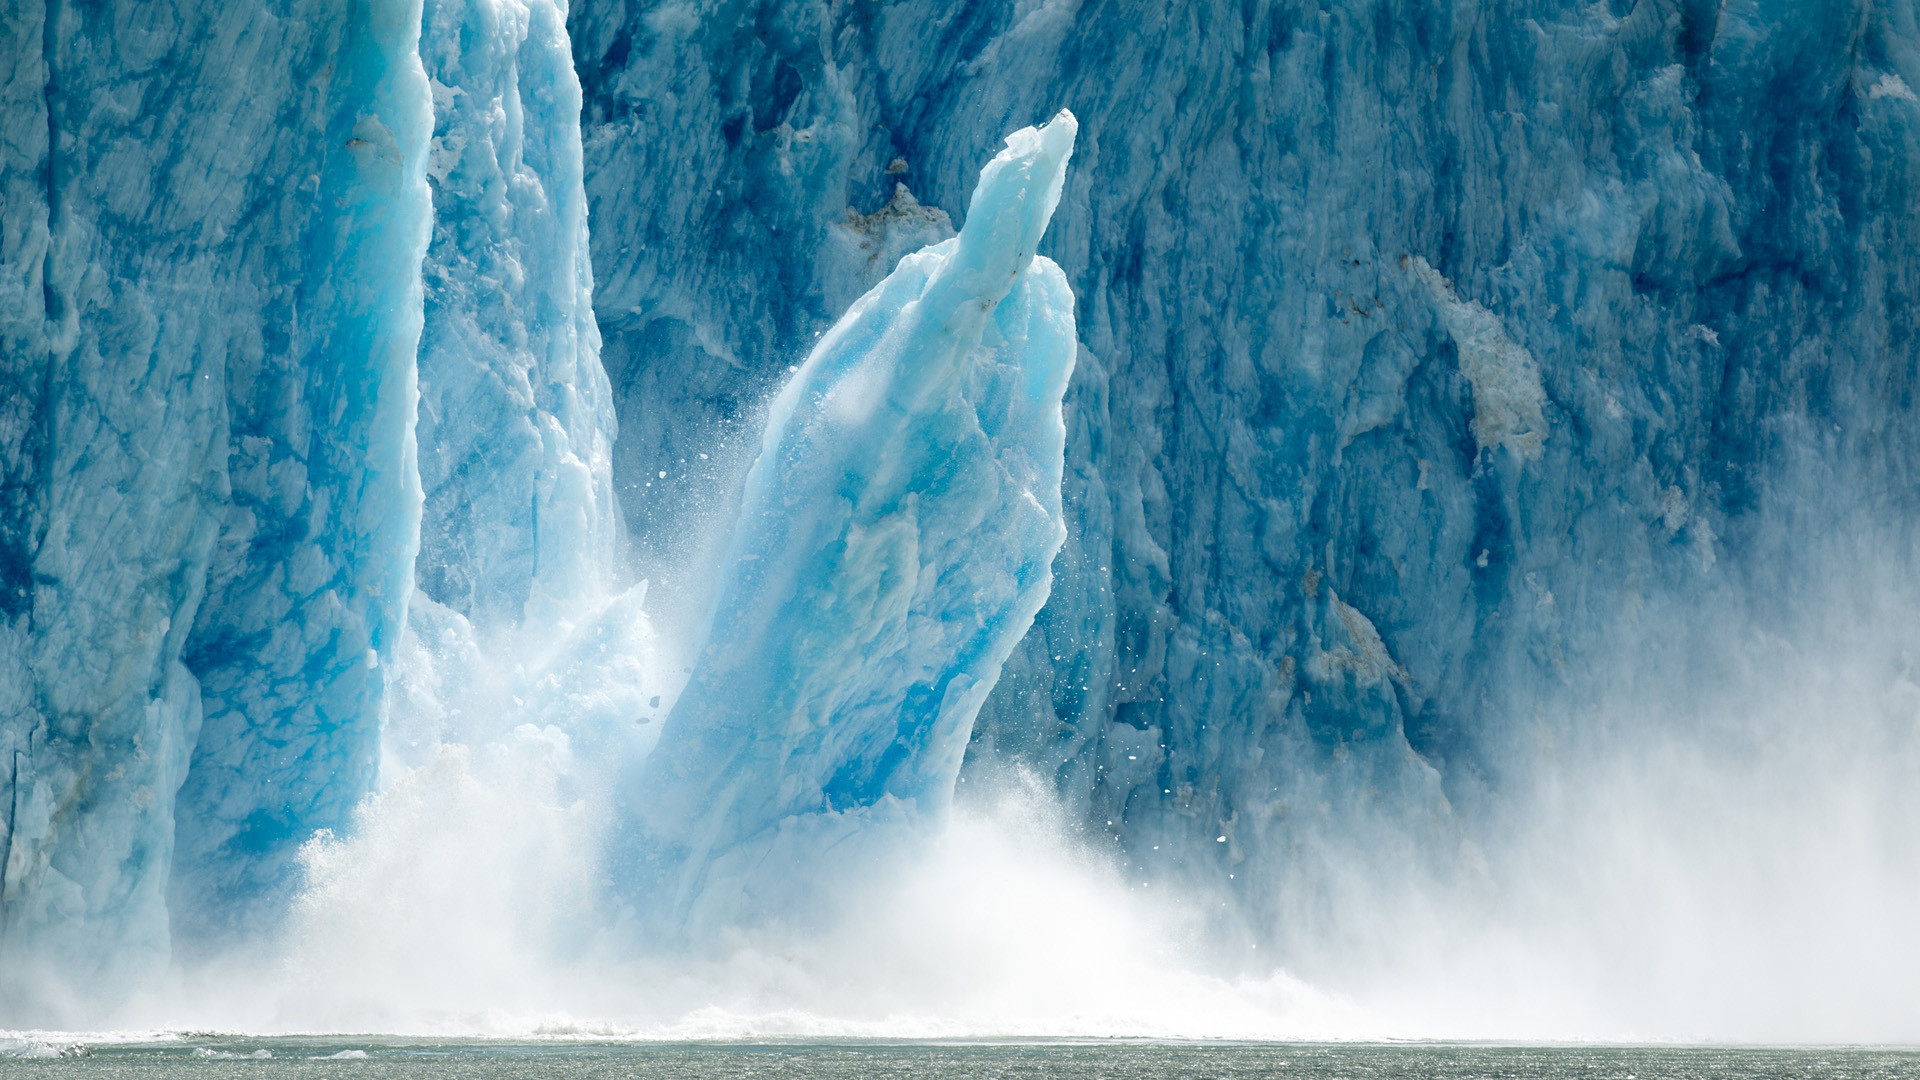 Res: 1920x1080, Glacier HD Wallpaper   Background Image      ID:205714 - Wallpaper  Abyss